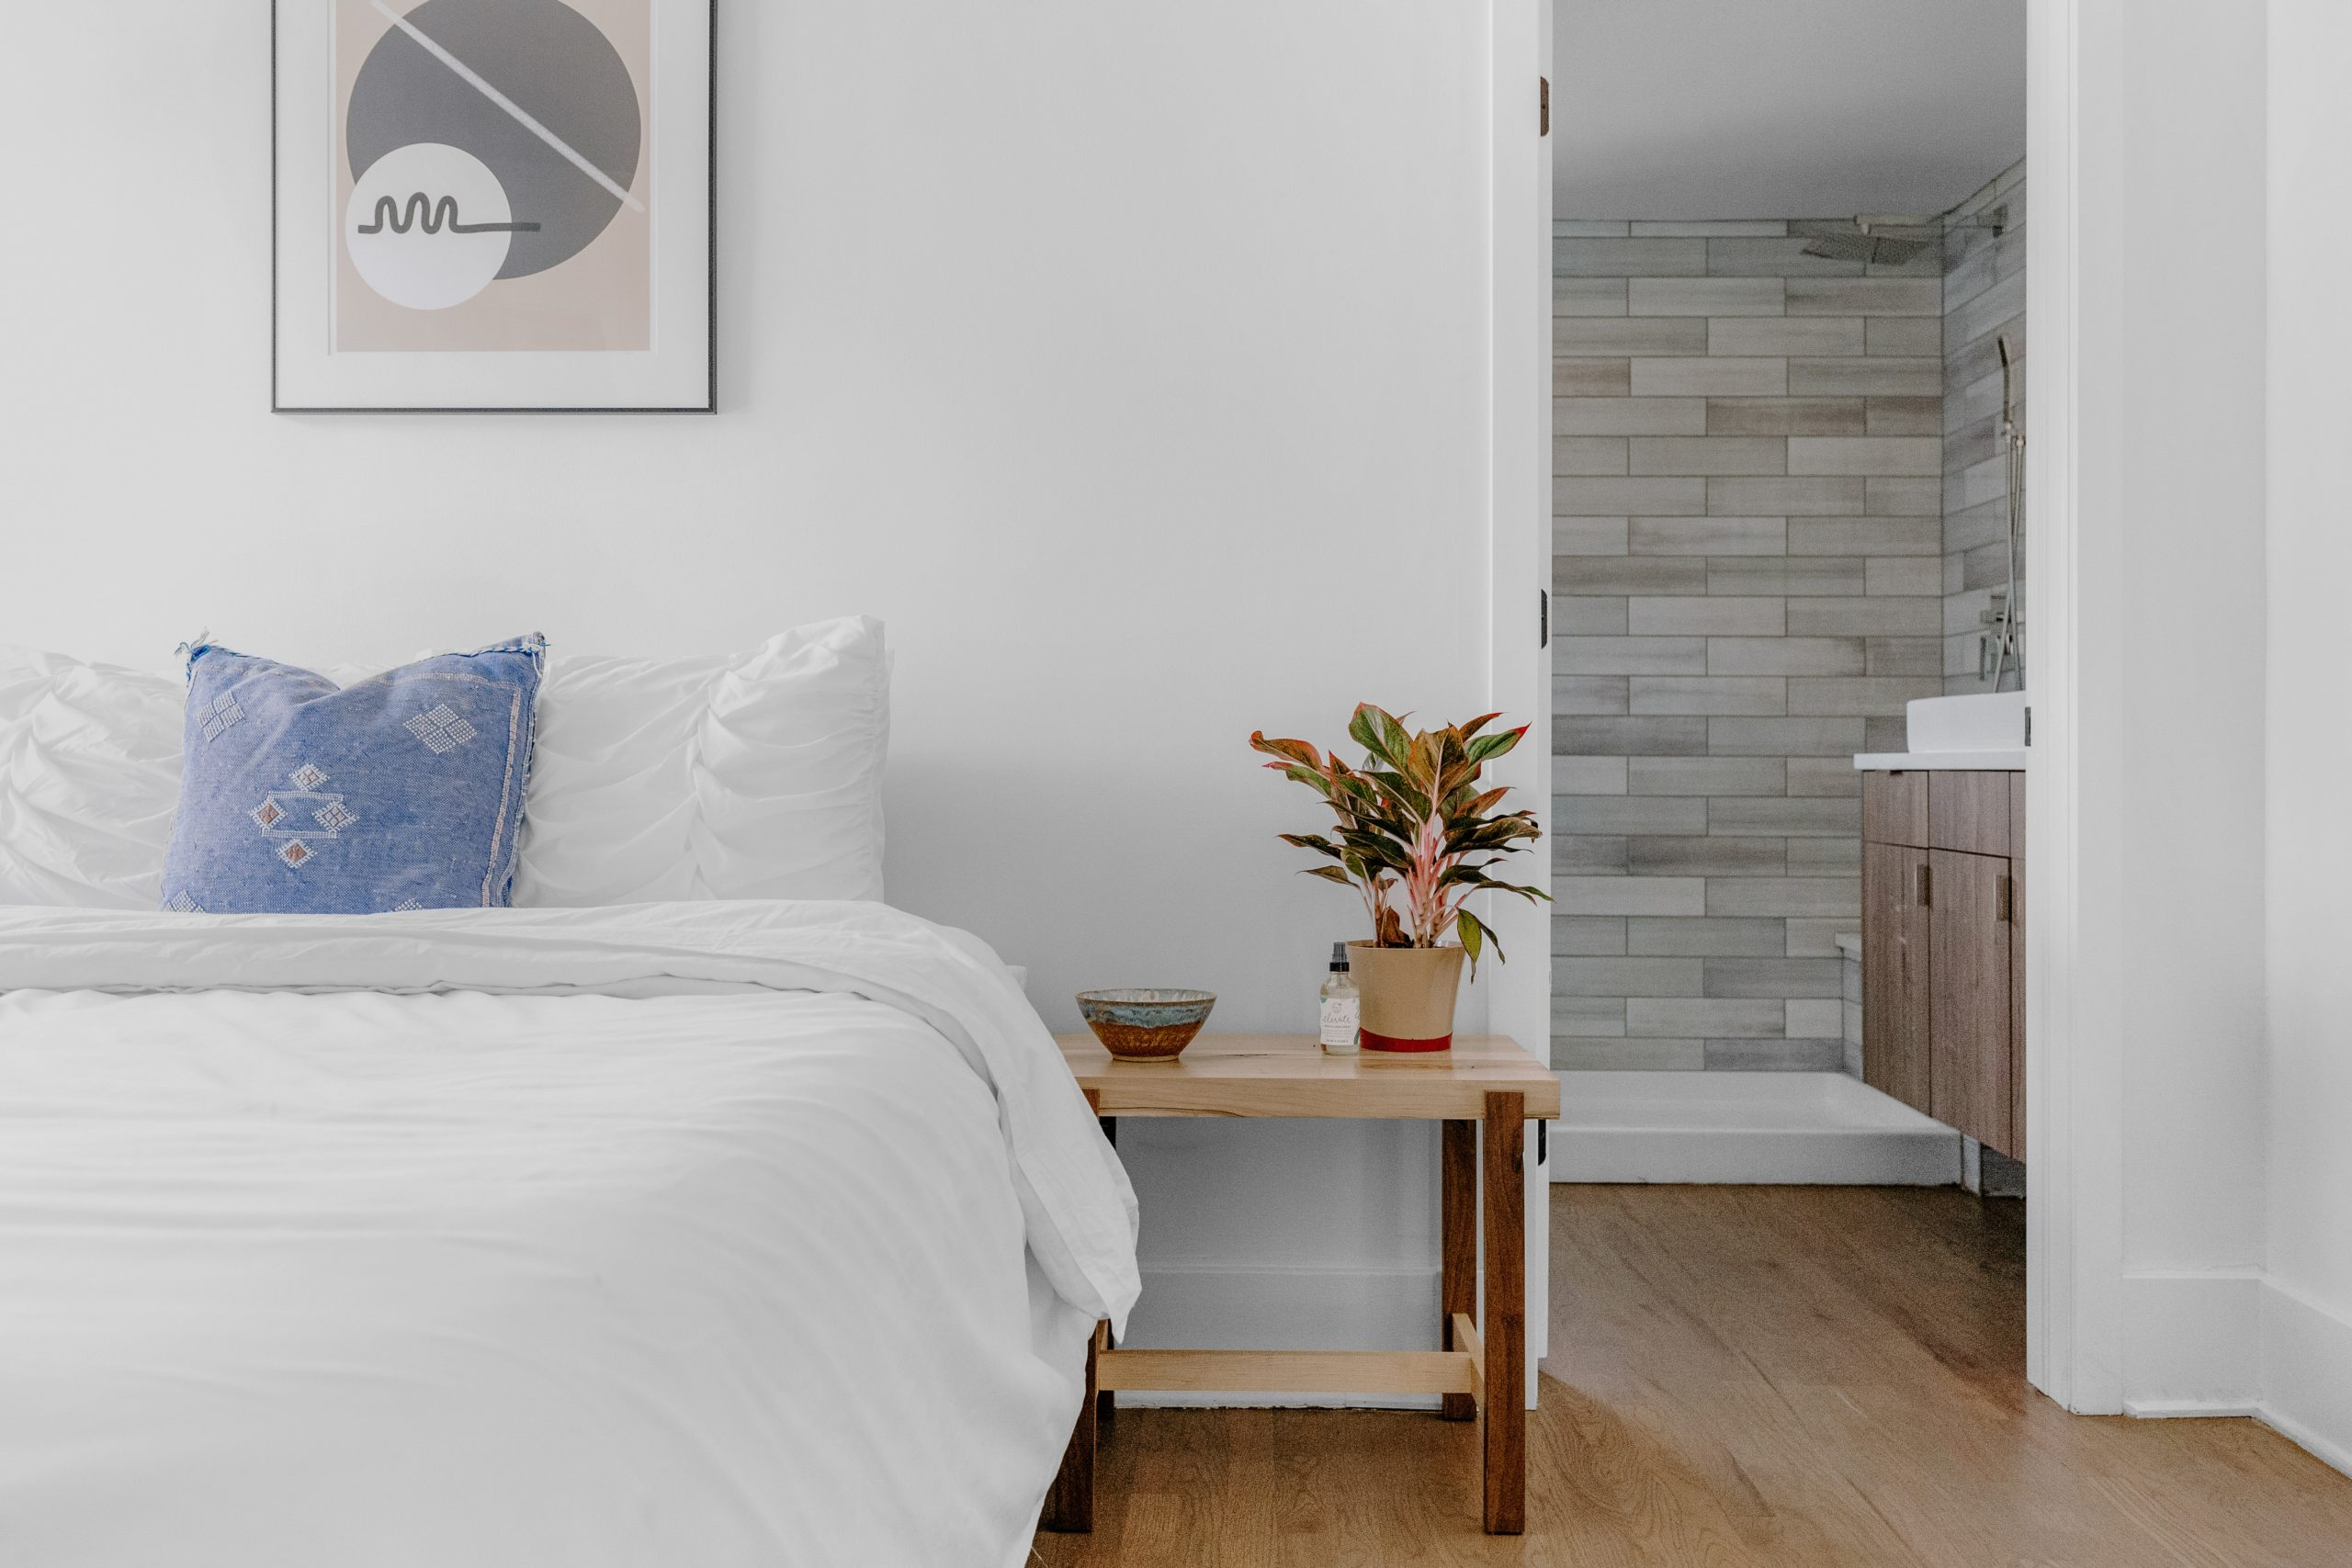 5 Easy Ways to Create Space in Your Bedroom